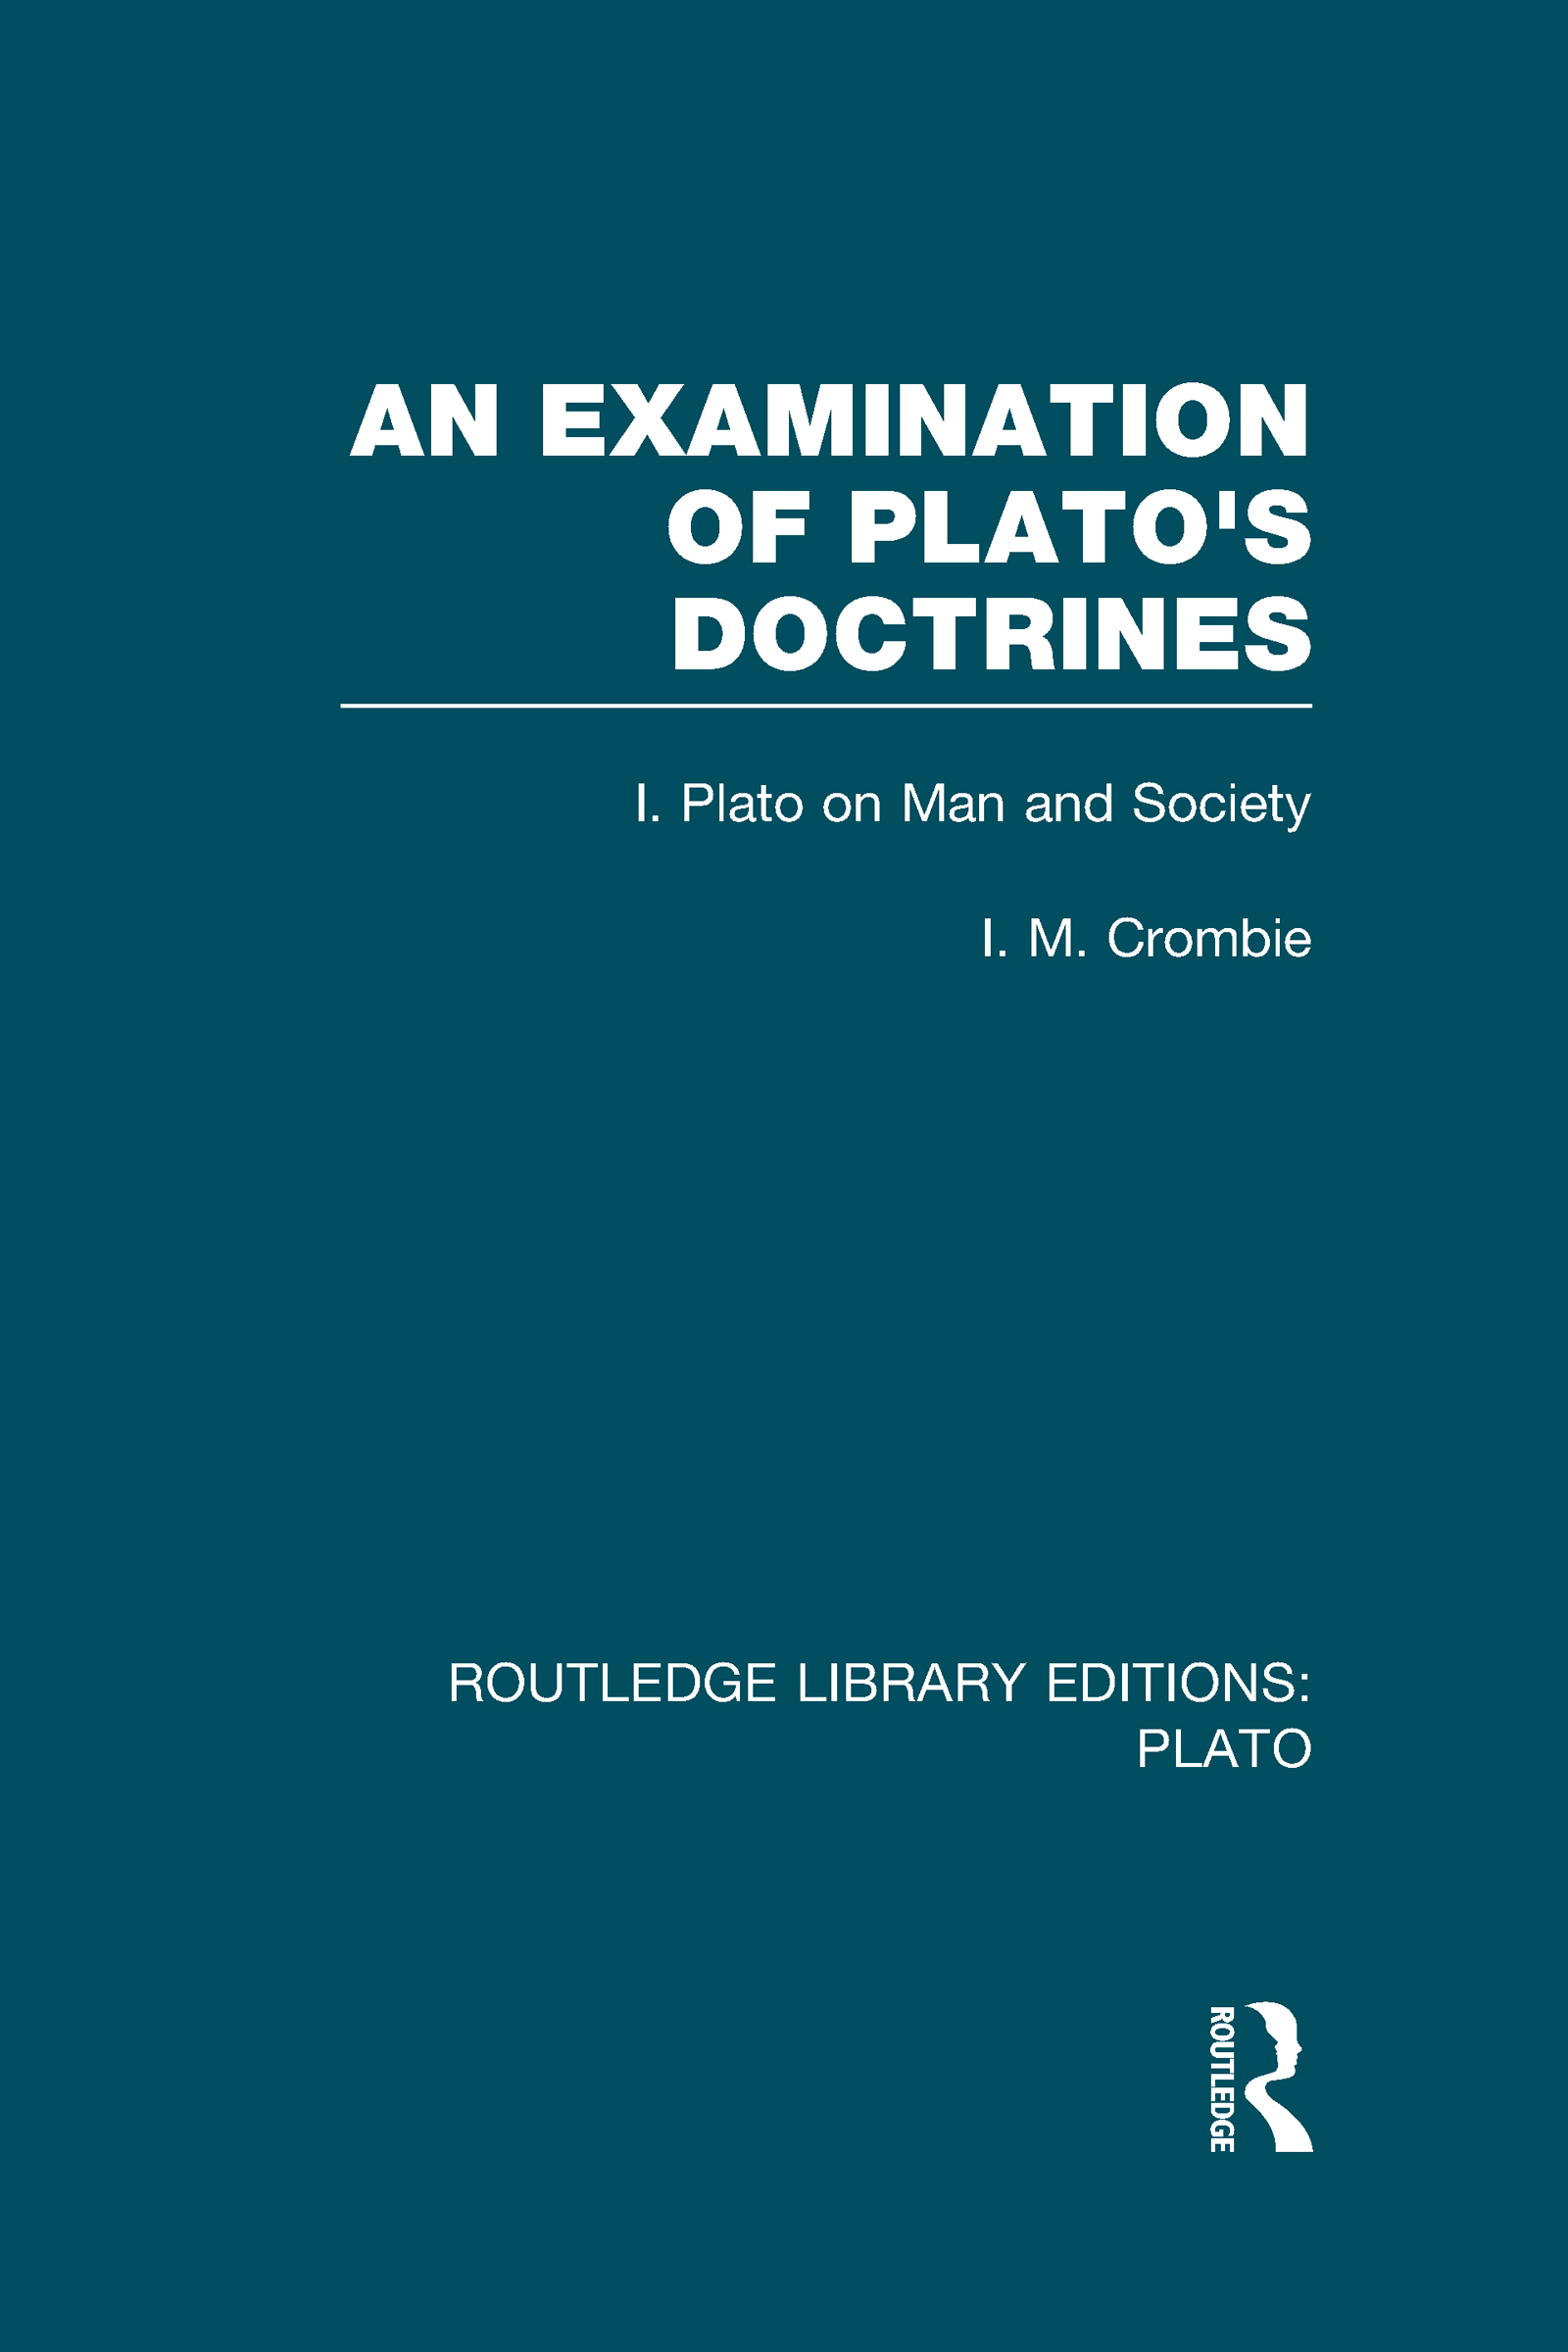 An Examination of Plato's Doctrines (RLE: Plato): Volume 1 Plato on Man and Society (Hardback) book cover